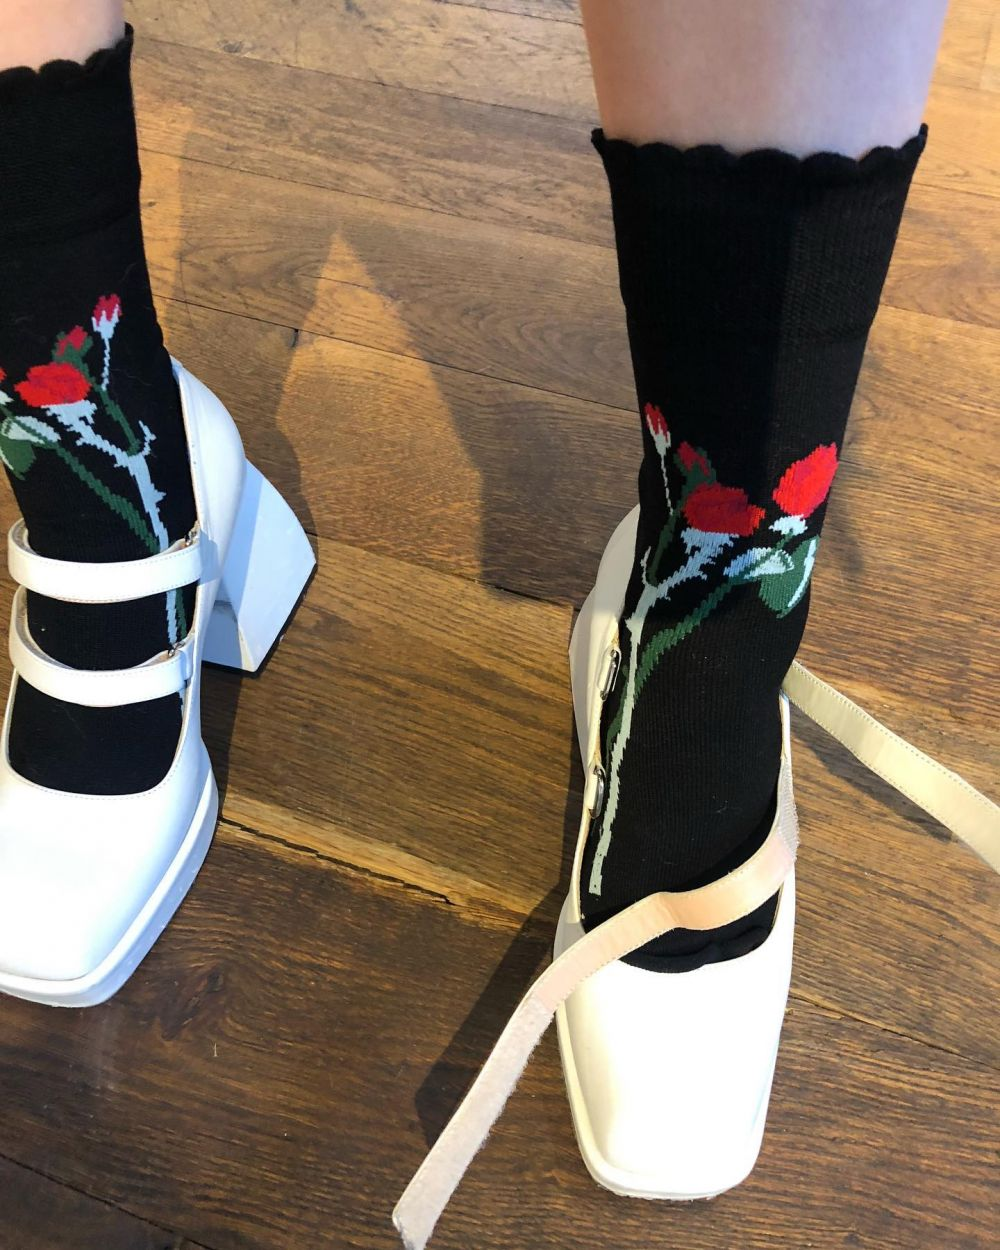 🌹 EXCITING NEW THINGS COMING. 🌹~ Preview of our rose socks! #PS22  Showing the new collection 1-7 March.  For wholesale enquiries please contact renske@parrotagency.com  For press enquiries please contact sszymura@l52.co.uk  Can't wait to show you more! ❤️